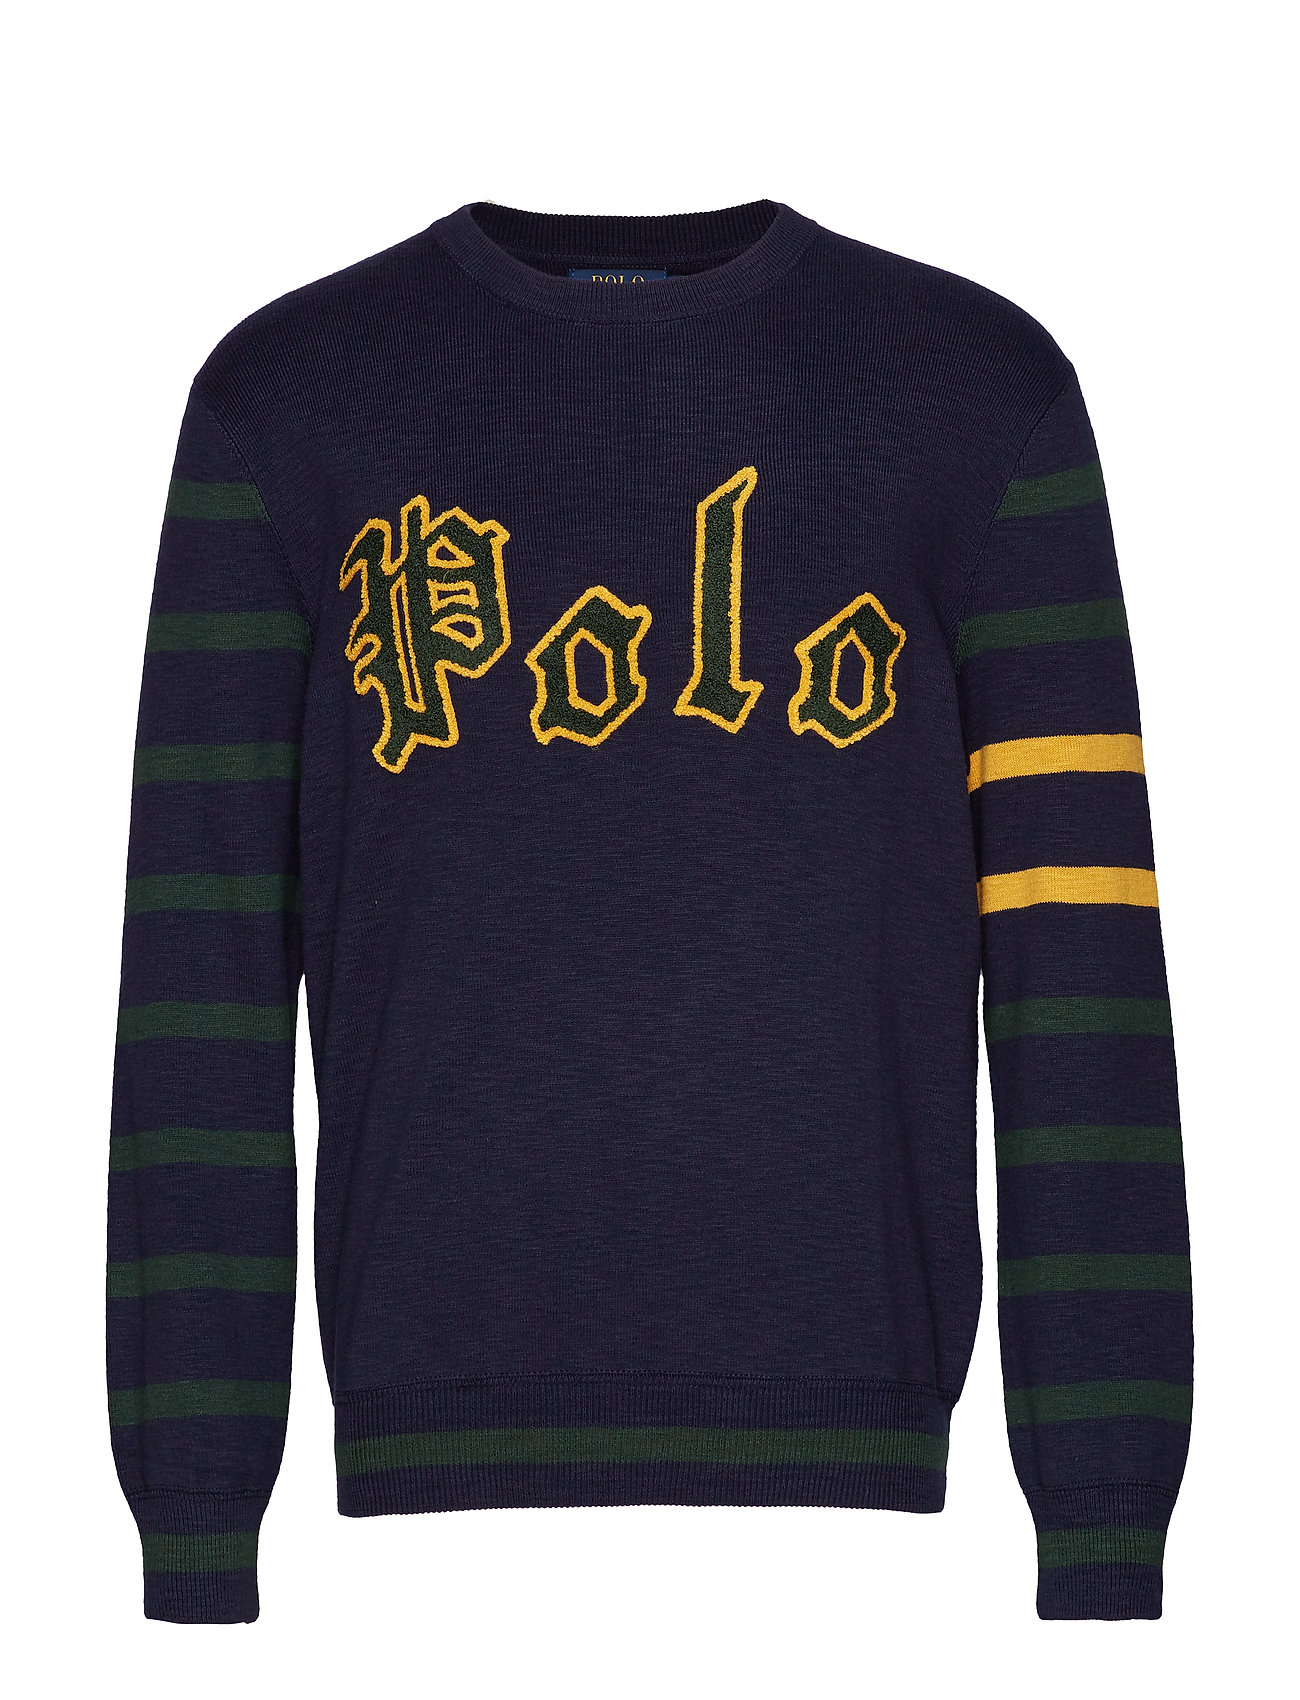 Polo Ralph Lauren Cotton Letterman Sweater - HUNTER NAVY/FORES